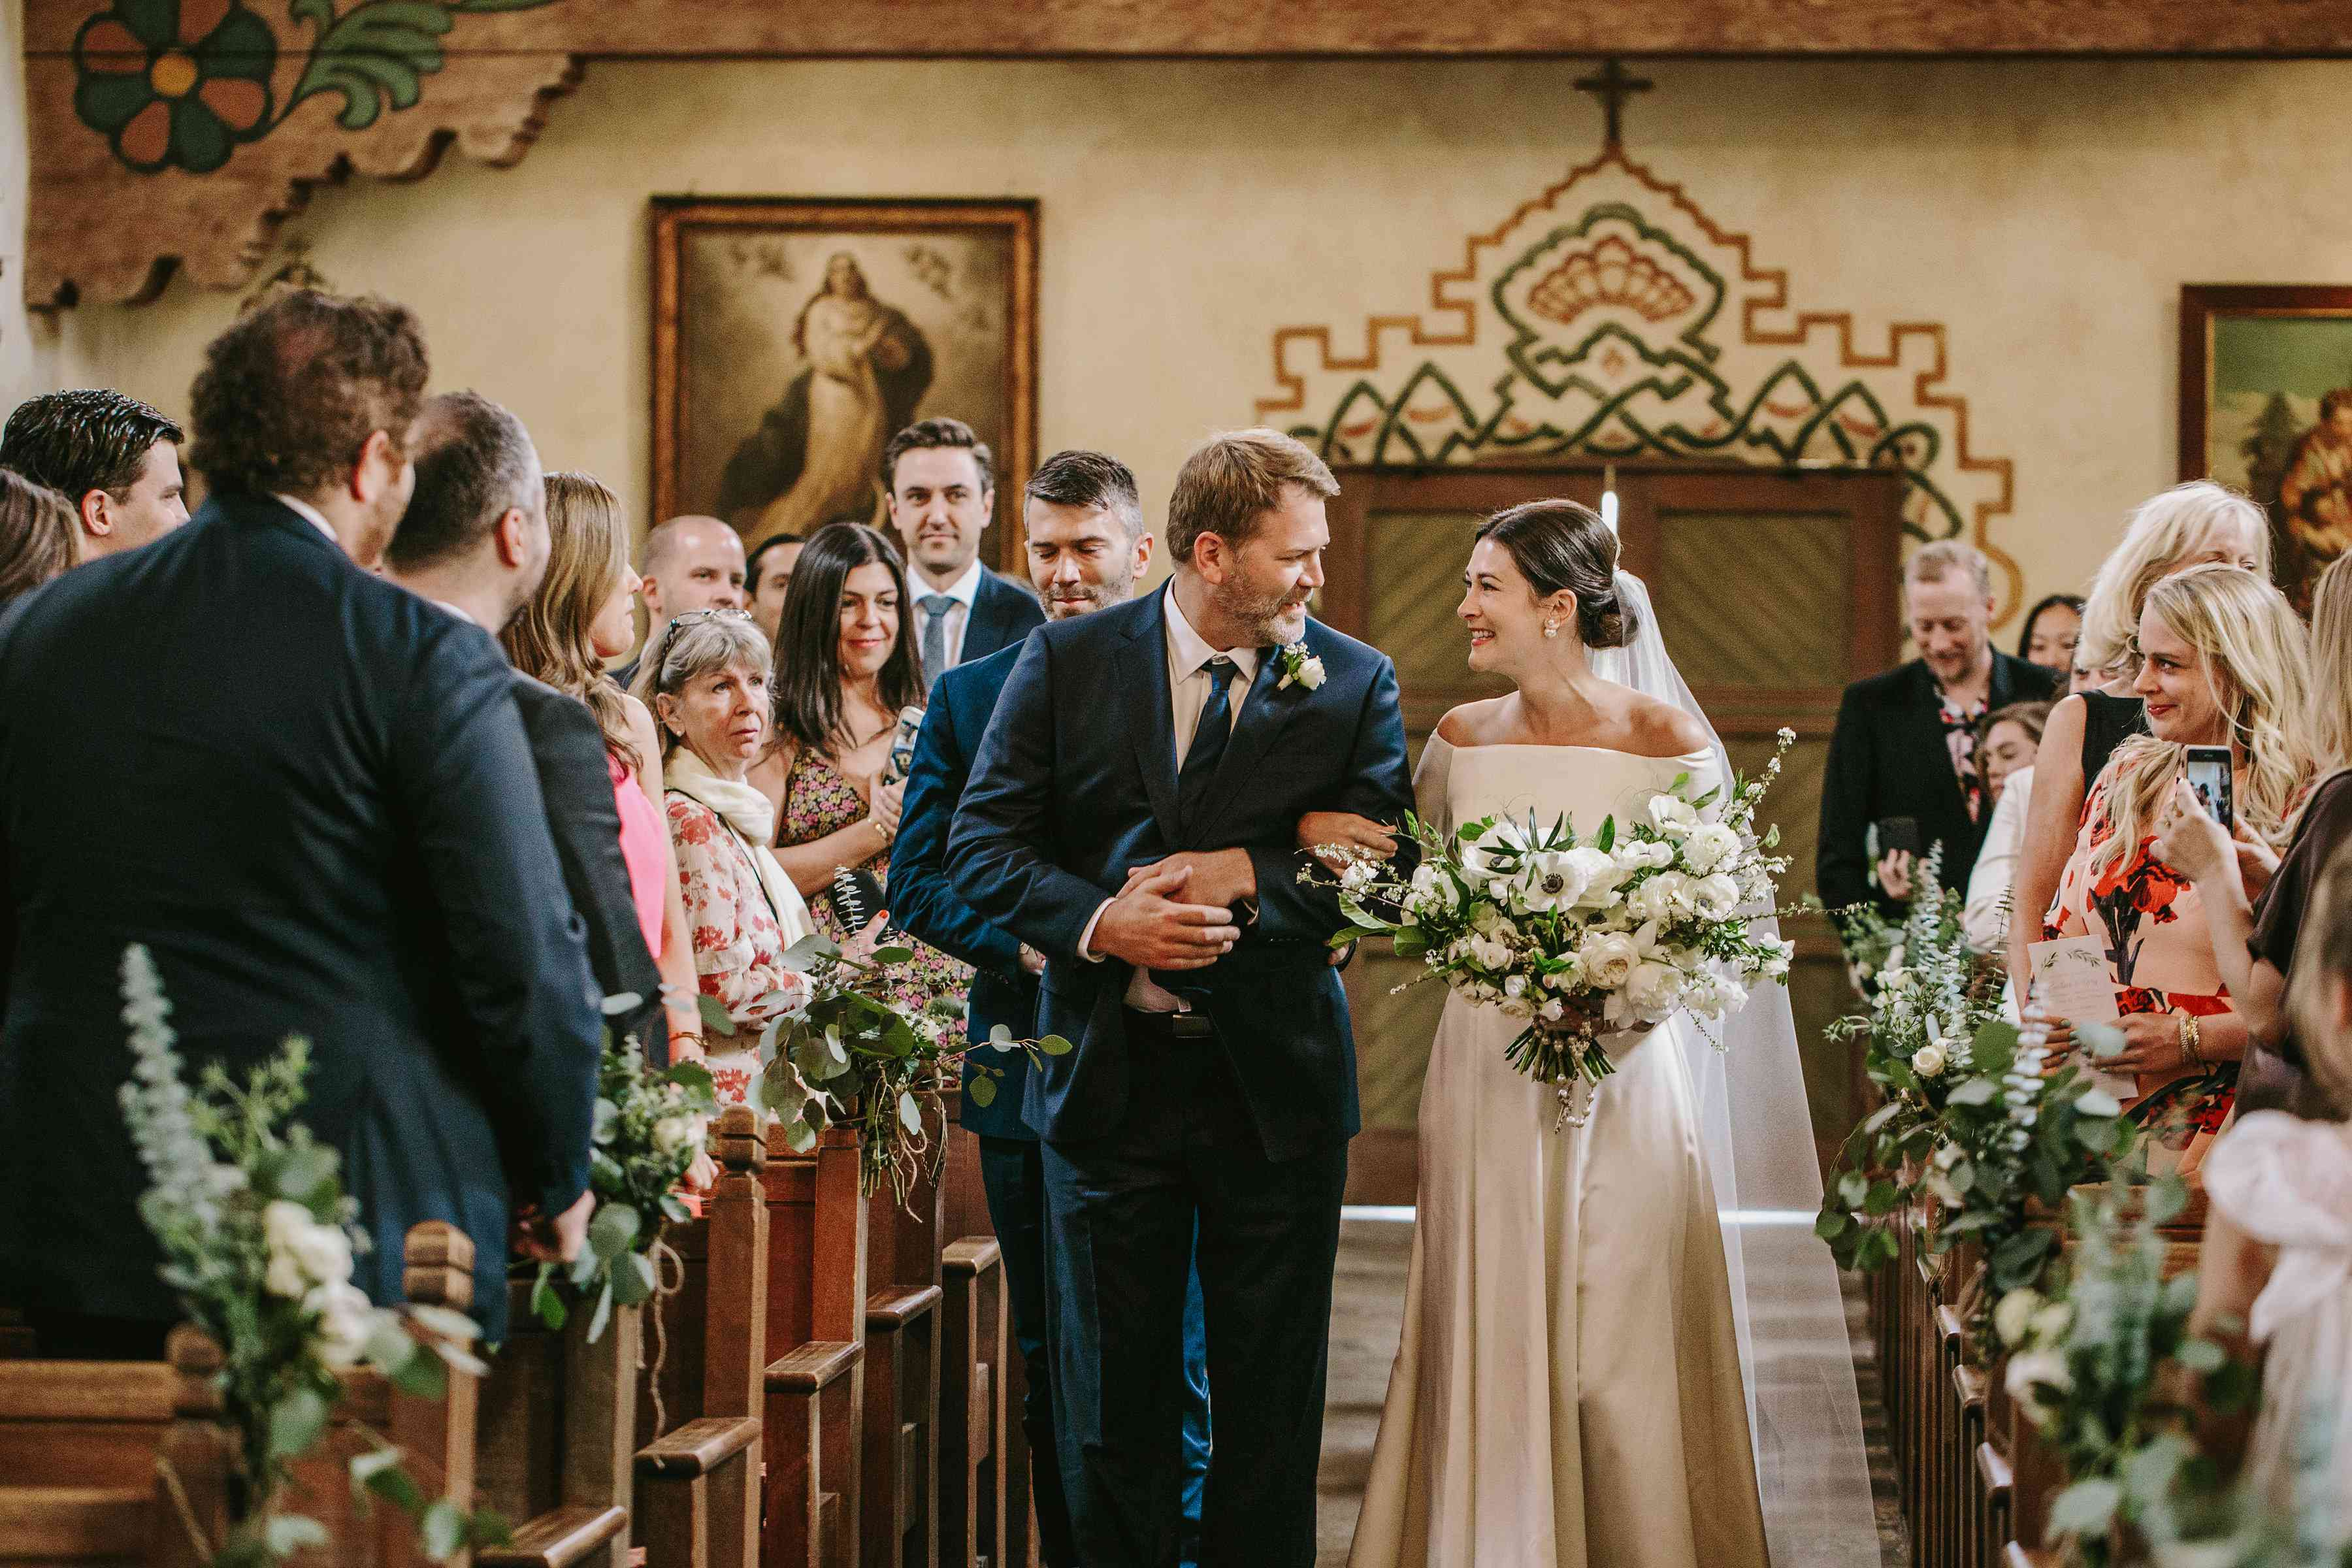 <p>brother walking bride down aisle</p><br><br>